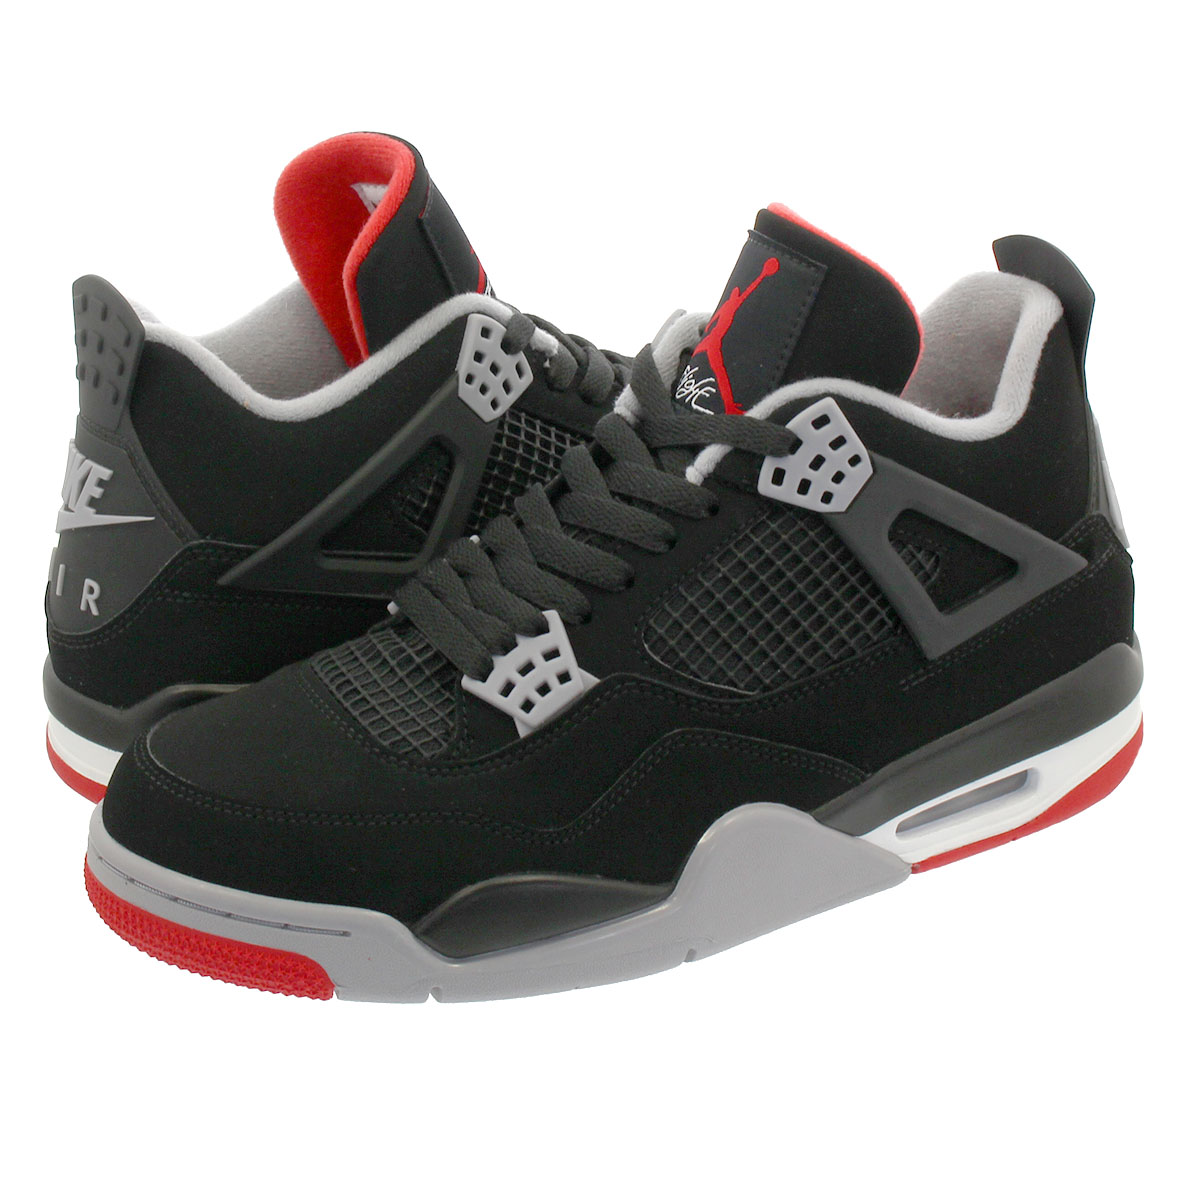 NIKE AIR JORDAN 4 RETRO 【BRED】 ナイキ エア ジョーダン 4 レトロ BLACK/CEMENT GREY/SUMMIT WHITE/FIRE RED 308497-060